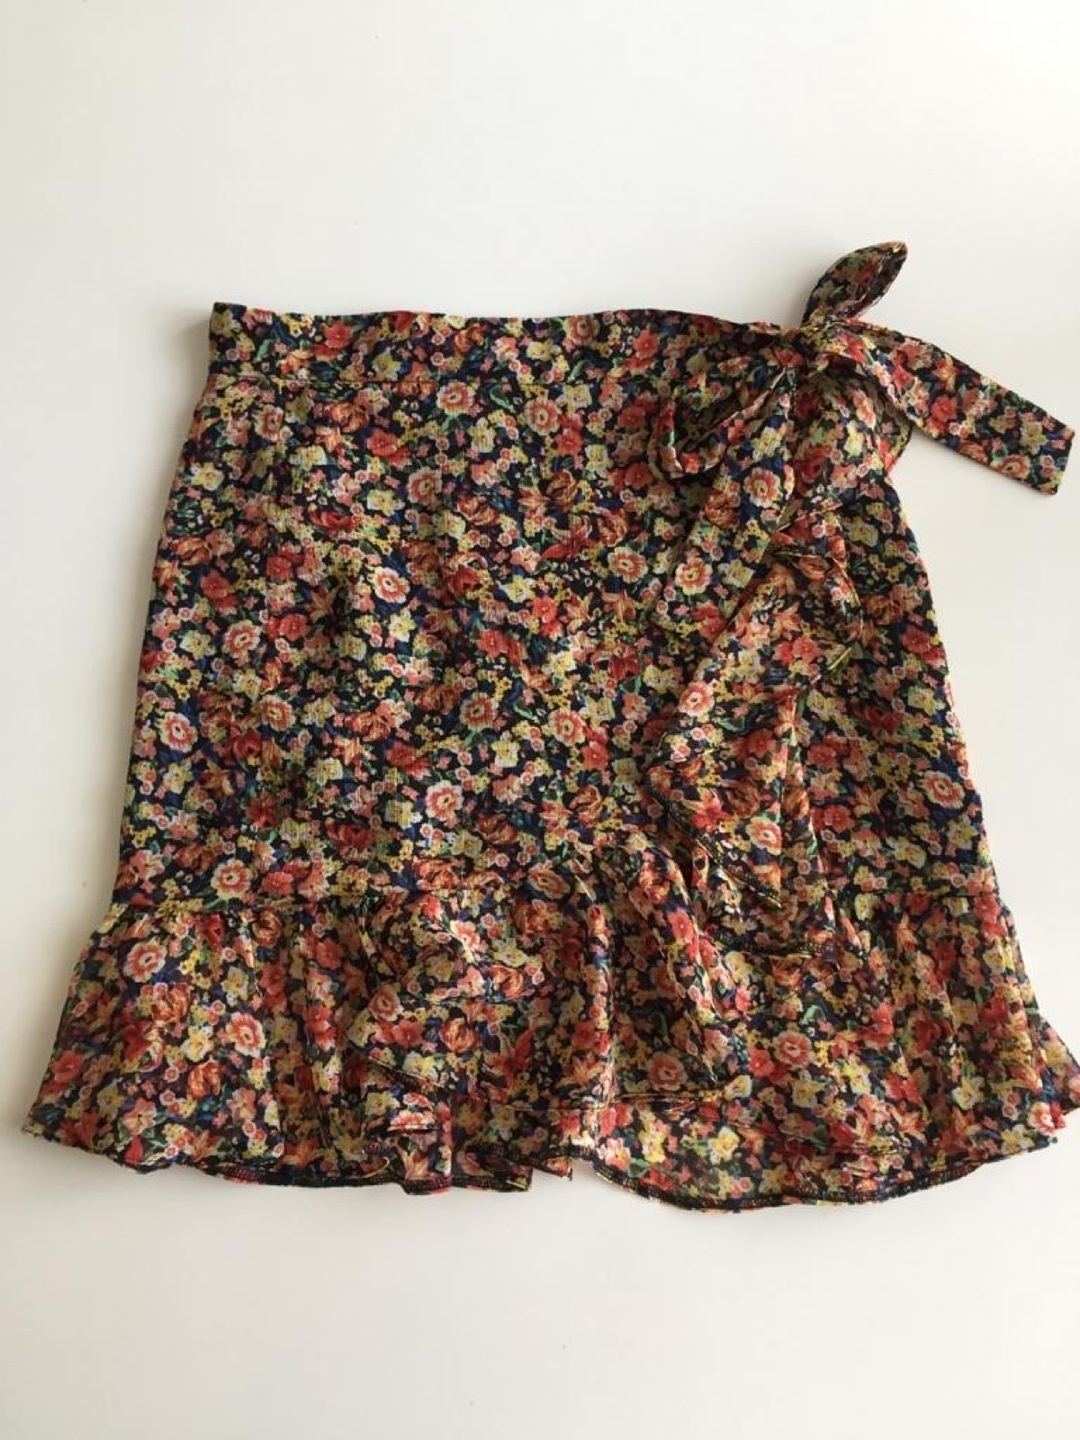 Women's skirts - URBAN OUTFITTERS photo 2